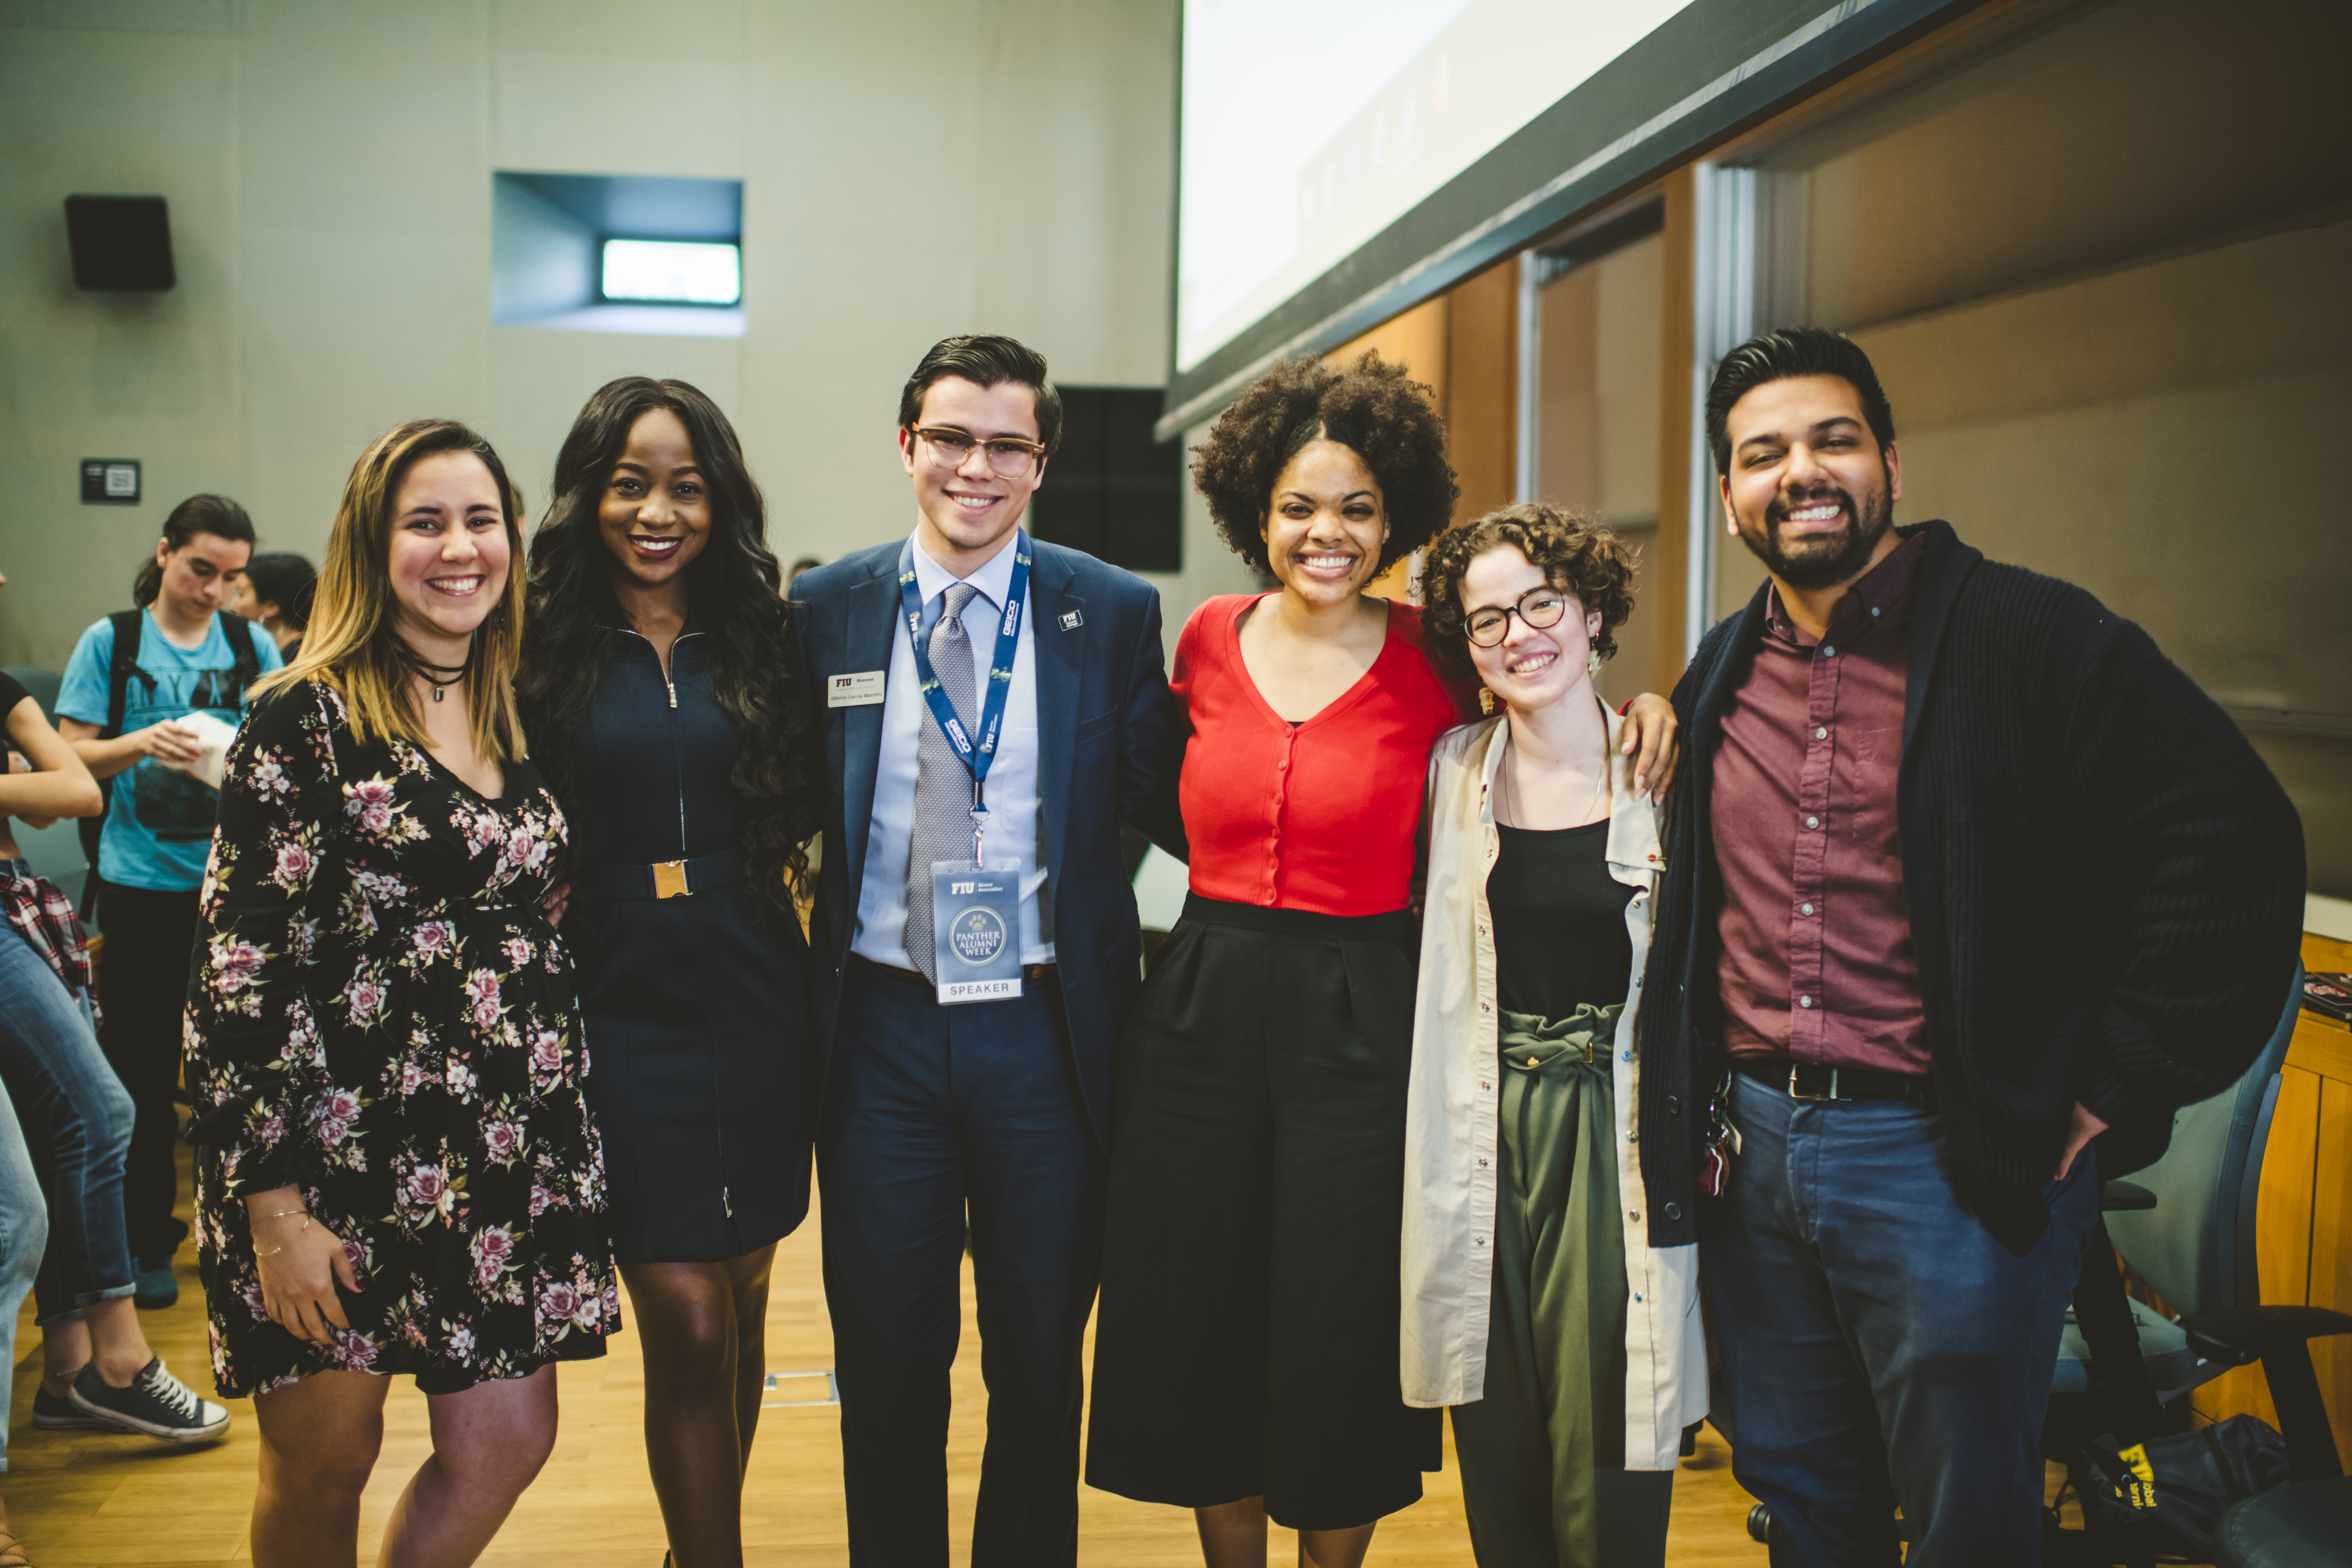 Pictured from left to right: Yeni Simon, Program Manager for Global Learning, Cindy Makita, Alberto Garcia Marrero, Yandra Mariano, Isabella Marie Garcia (all alumni panelists), and Enrique Rosell, Program Coordinator for The Honors College.